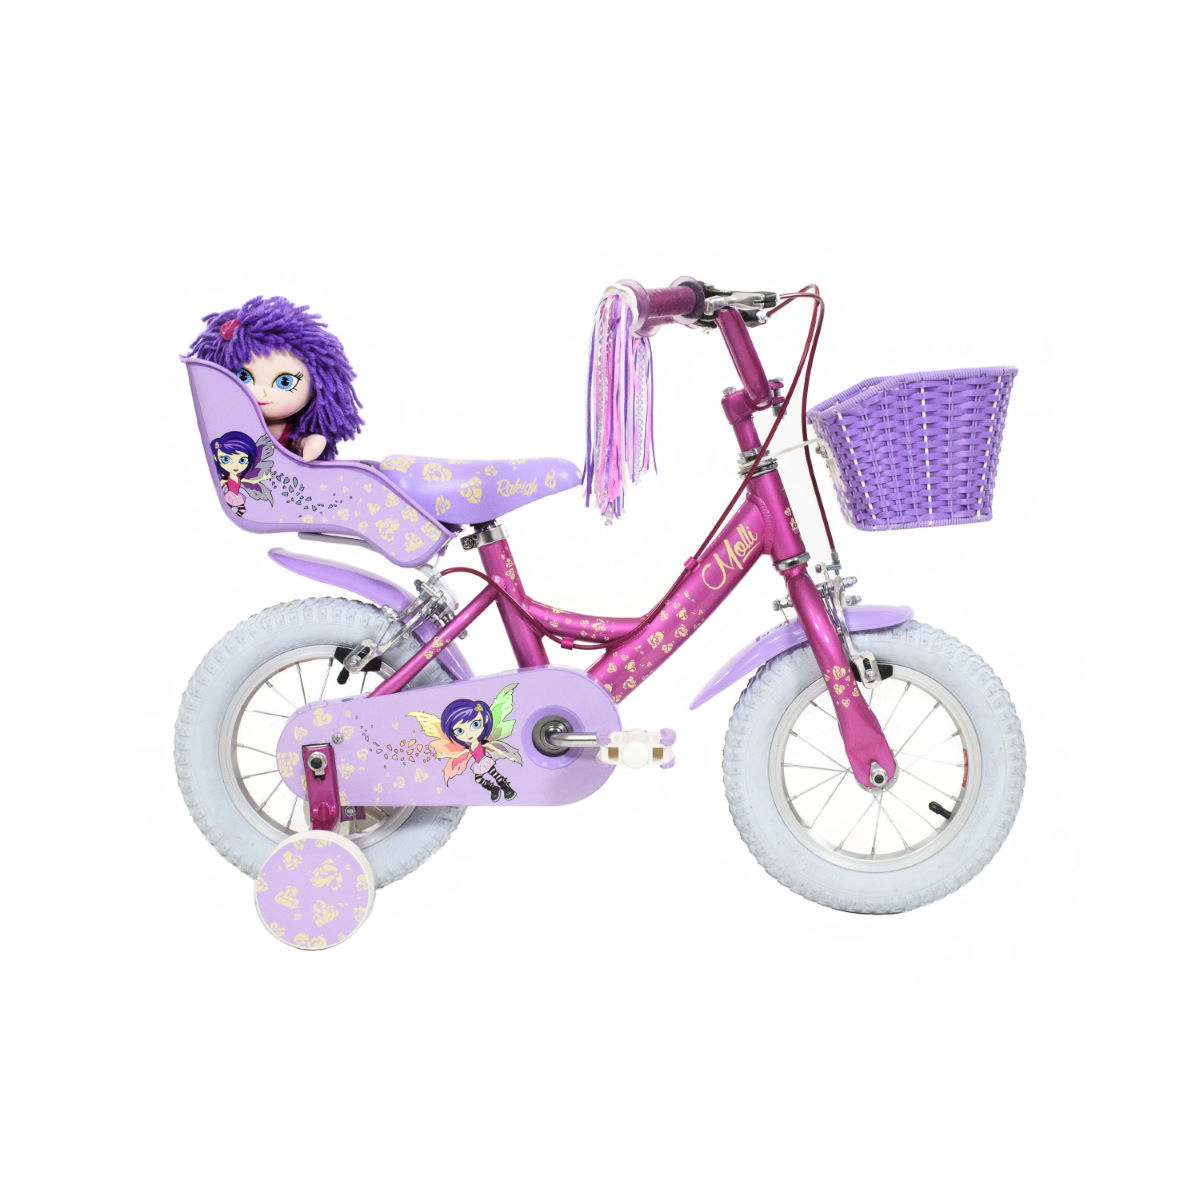 Vélo Enfant Raleigh MOLLI 12 (2016) - 12'' Wheel Pink/Purple